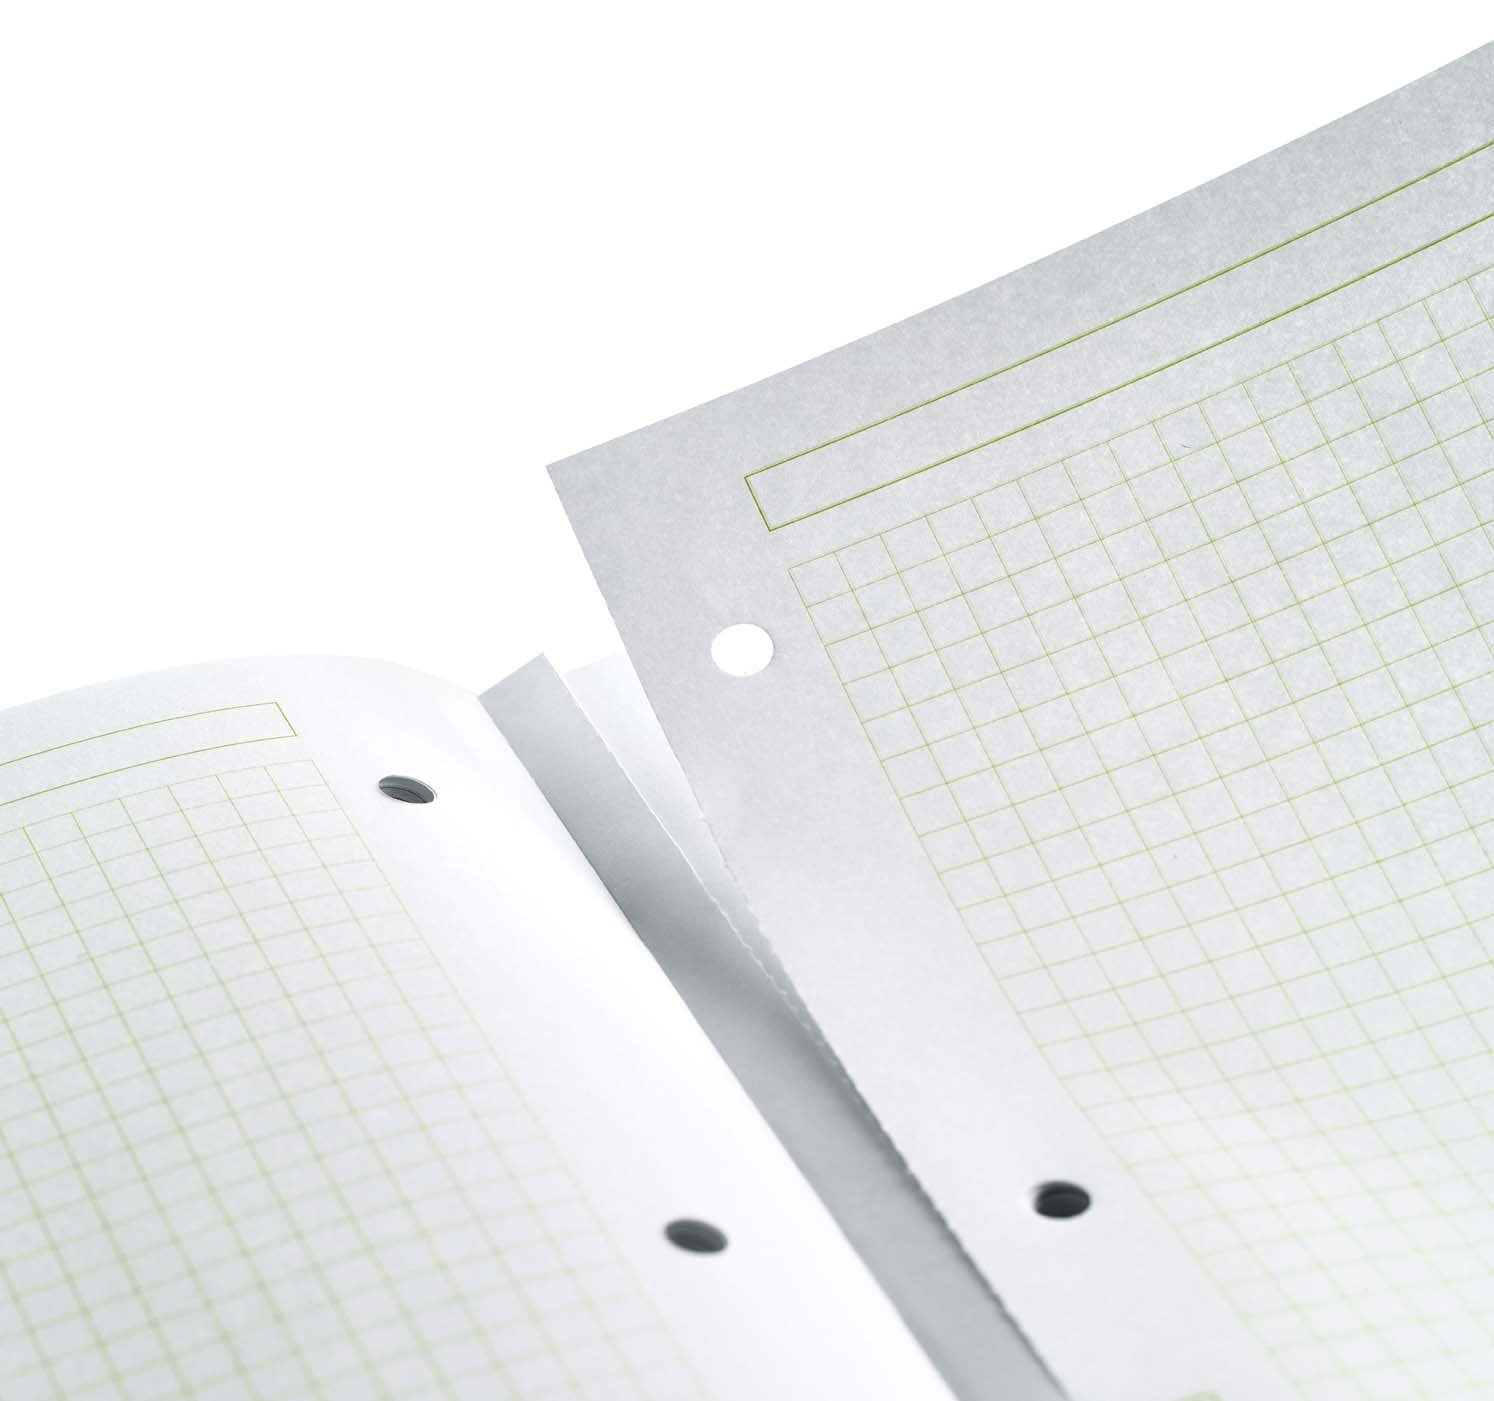 Miquelrius 8.25 X 11.75 A4 Wirebound Notebook, 6-Subject, Graph Paper, Black by Miquelrius